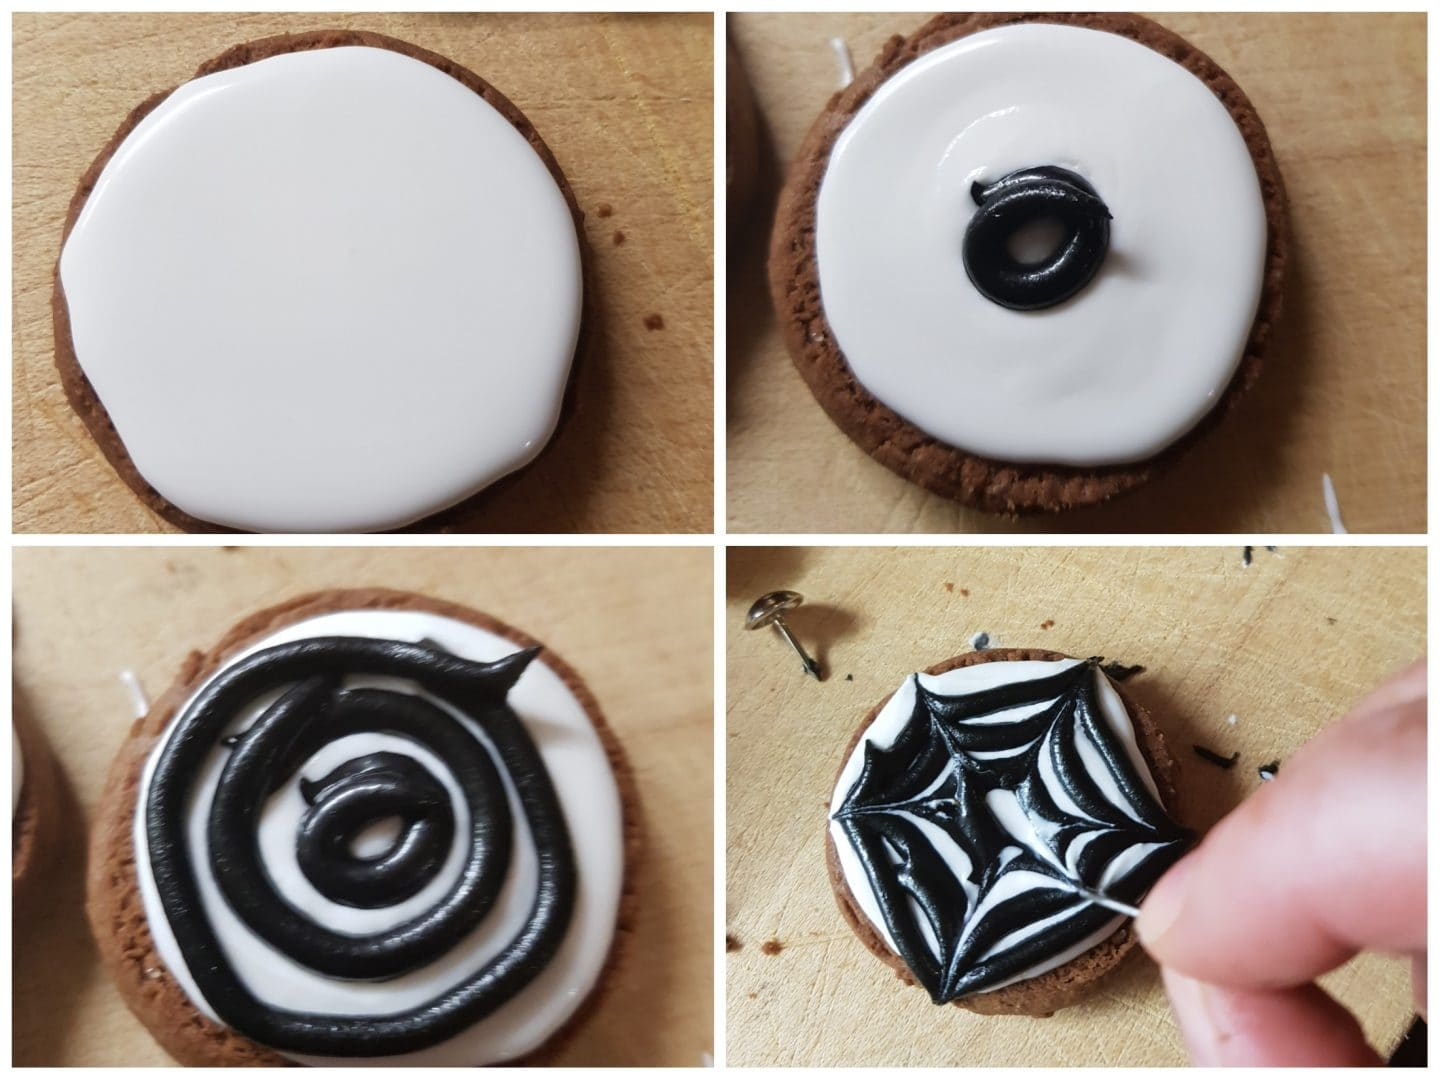 How to make spooky halloween cookies with a spiderweb effect